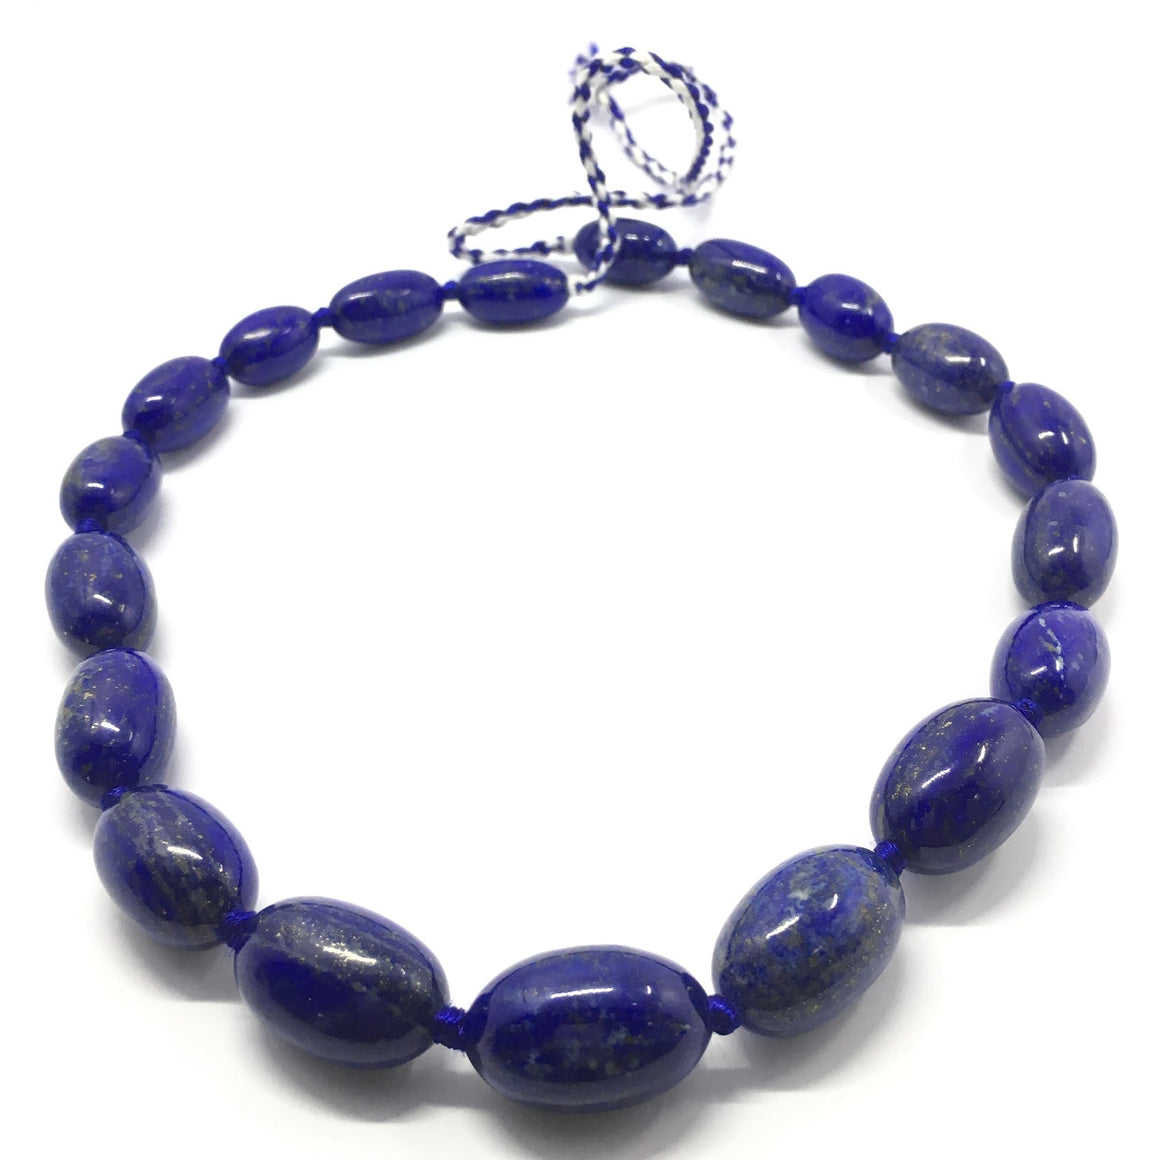 Lapis Lazuli Necklace - Lapis Necklace 19 Oval Beads - 725.5 ct